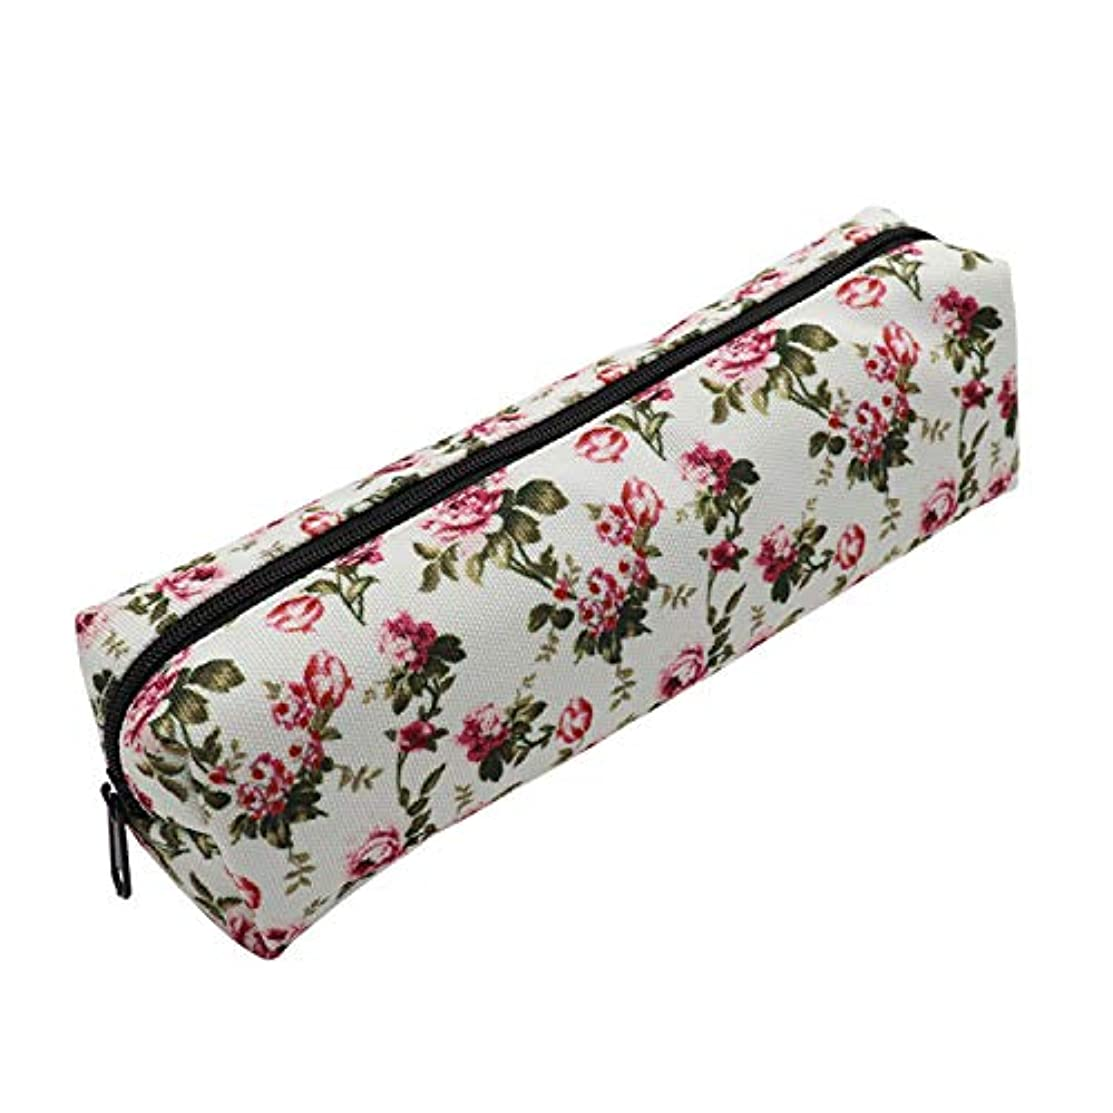 Aiphamy Rose Flowers Pencil Case Holder Zipper Canvas Pen Pouch Bag for Boys Girls Kids Teens Teenagers Student Women (White)